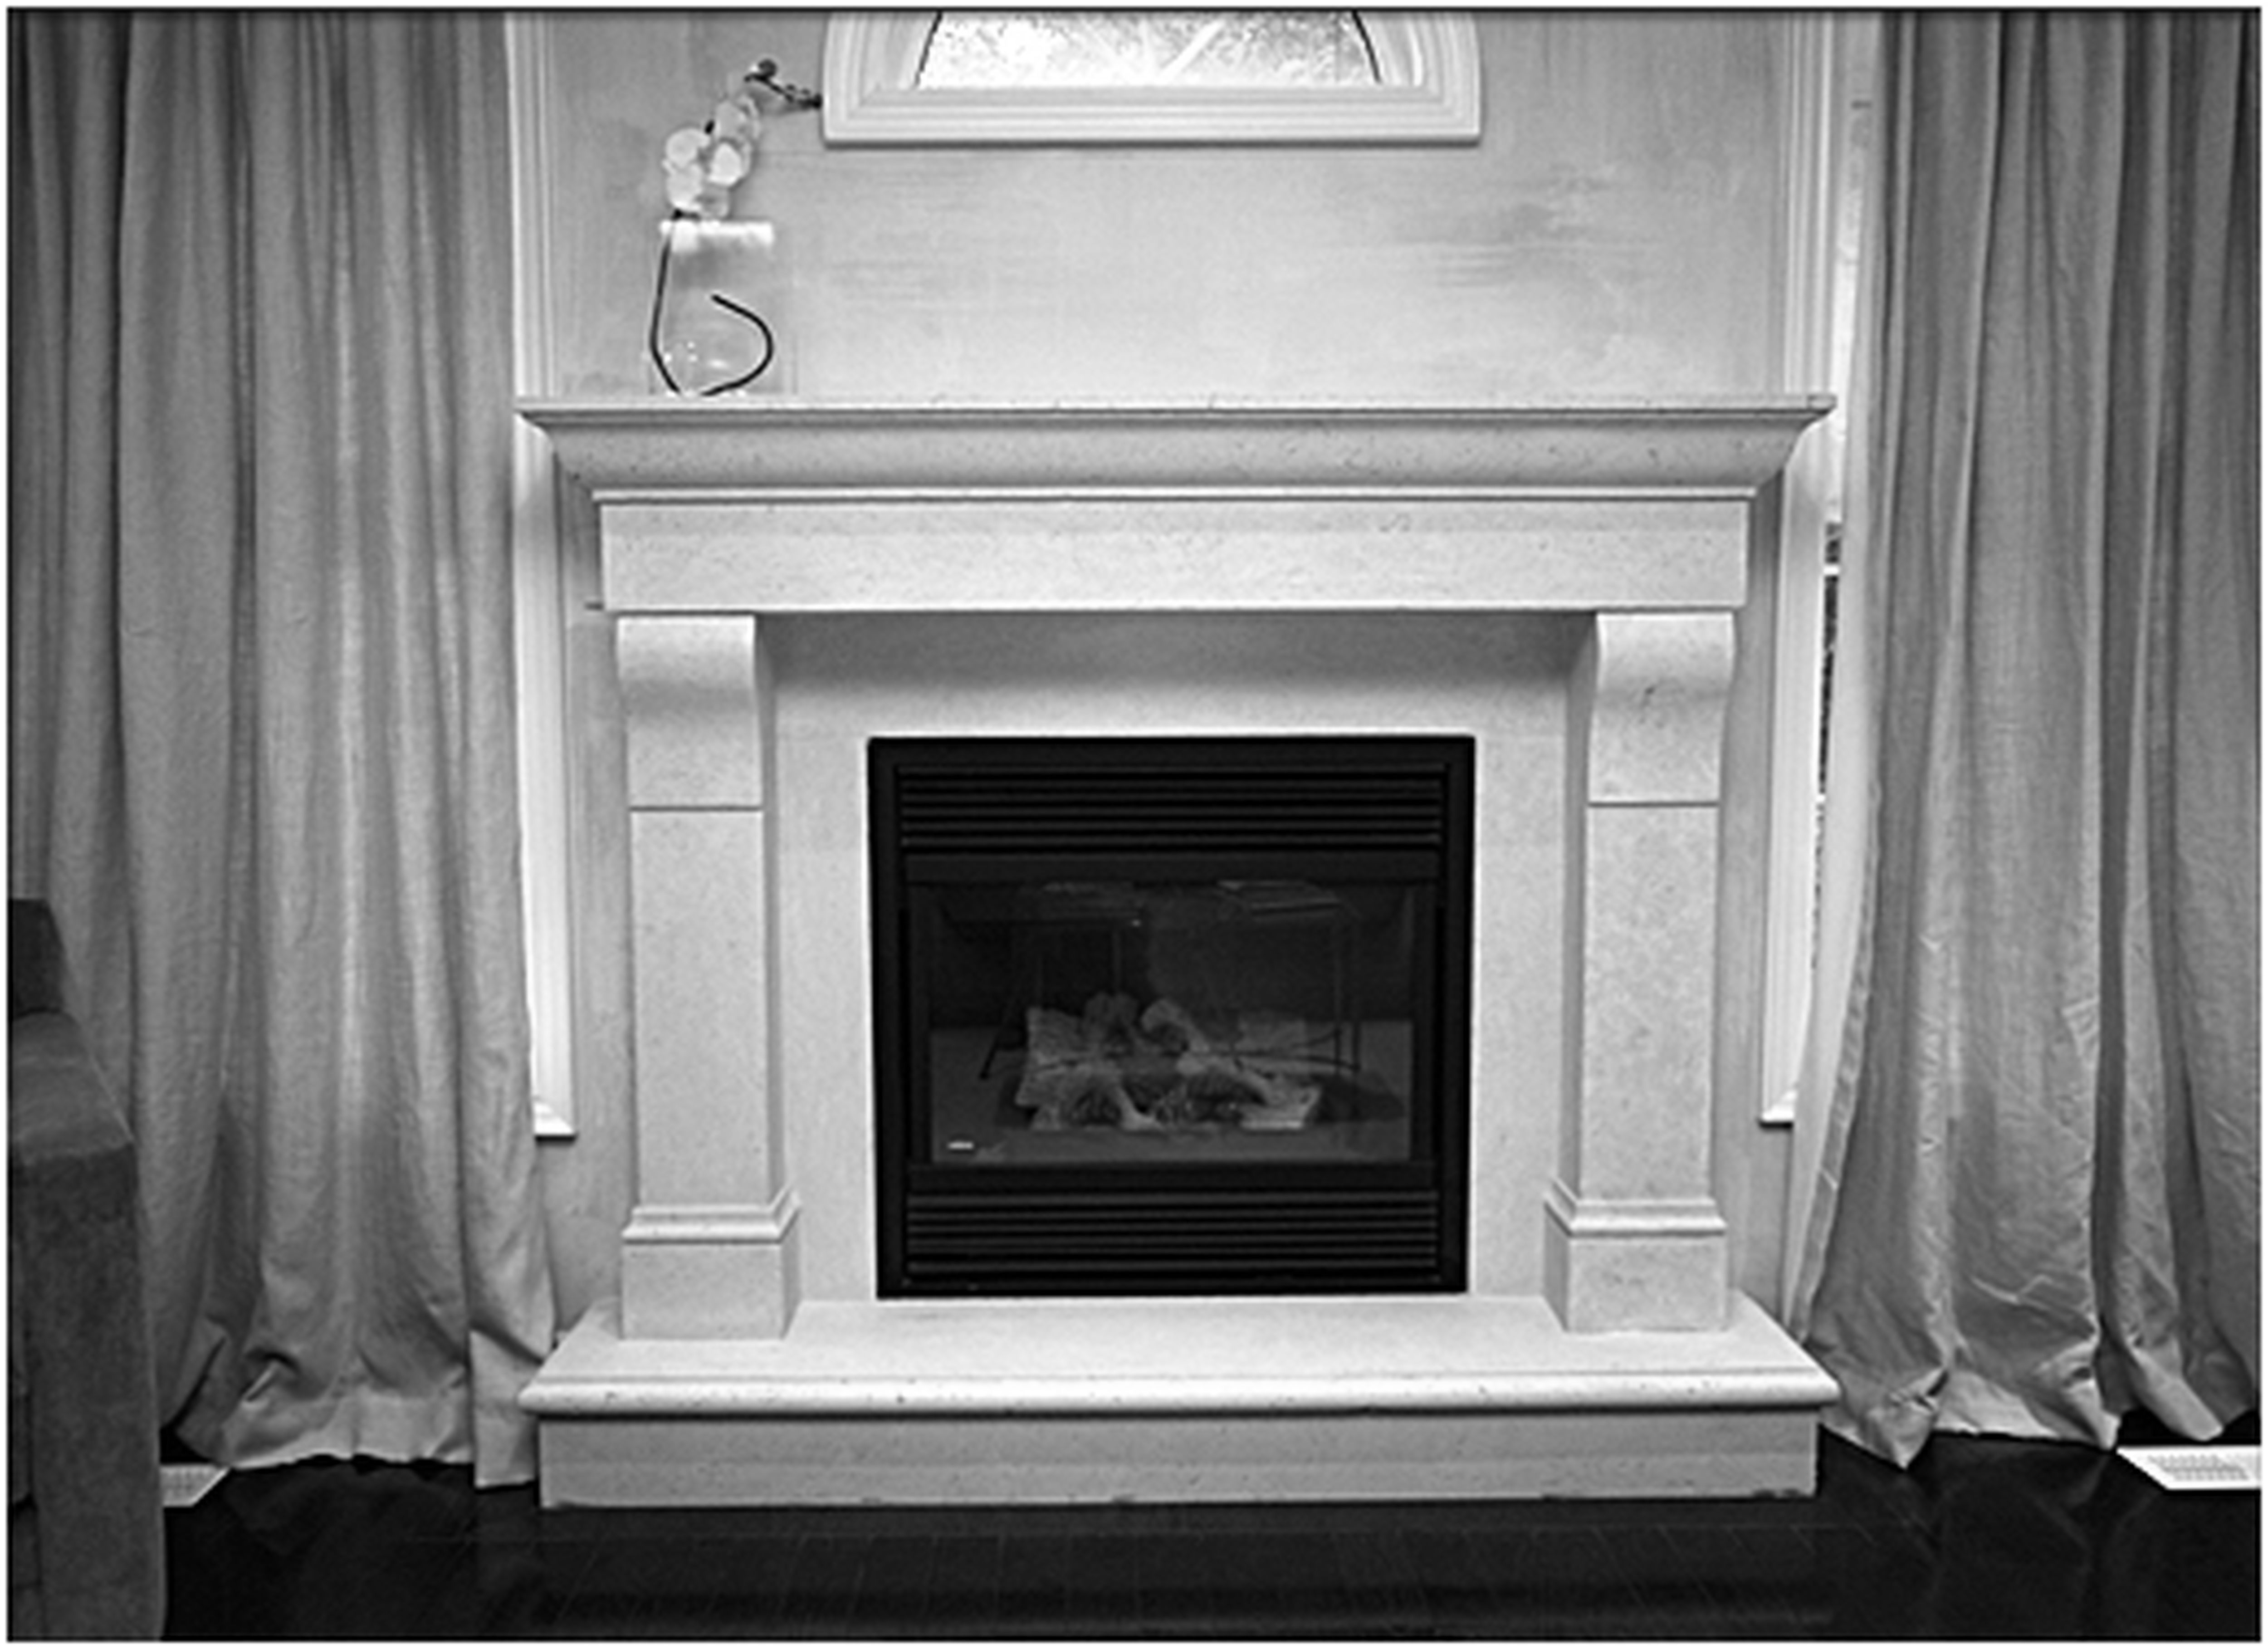 Fireplace Design Ideas With Tile corner two sided fireplace mantels corner fireplaces big tiles design ideas lynns ideas pinterest corner fireplaces tile design and two sided Granite Fireplace Surround Pictures Fireplace Pinterest Granite Fireplace Surrounds And Dark Granite